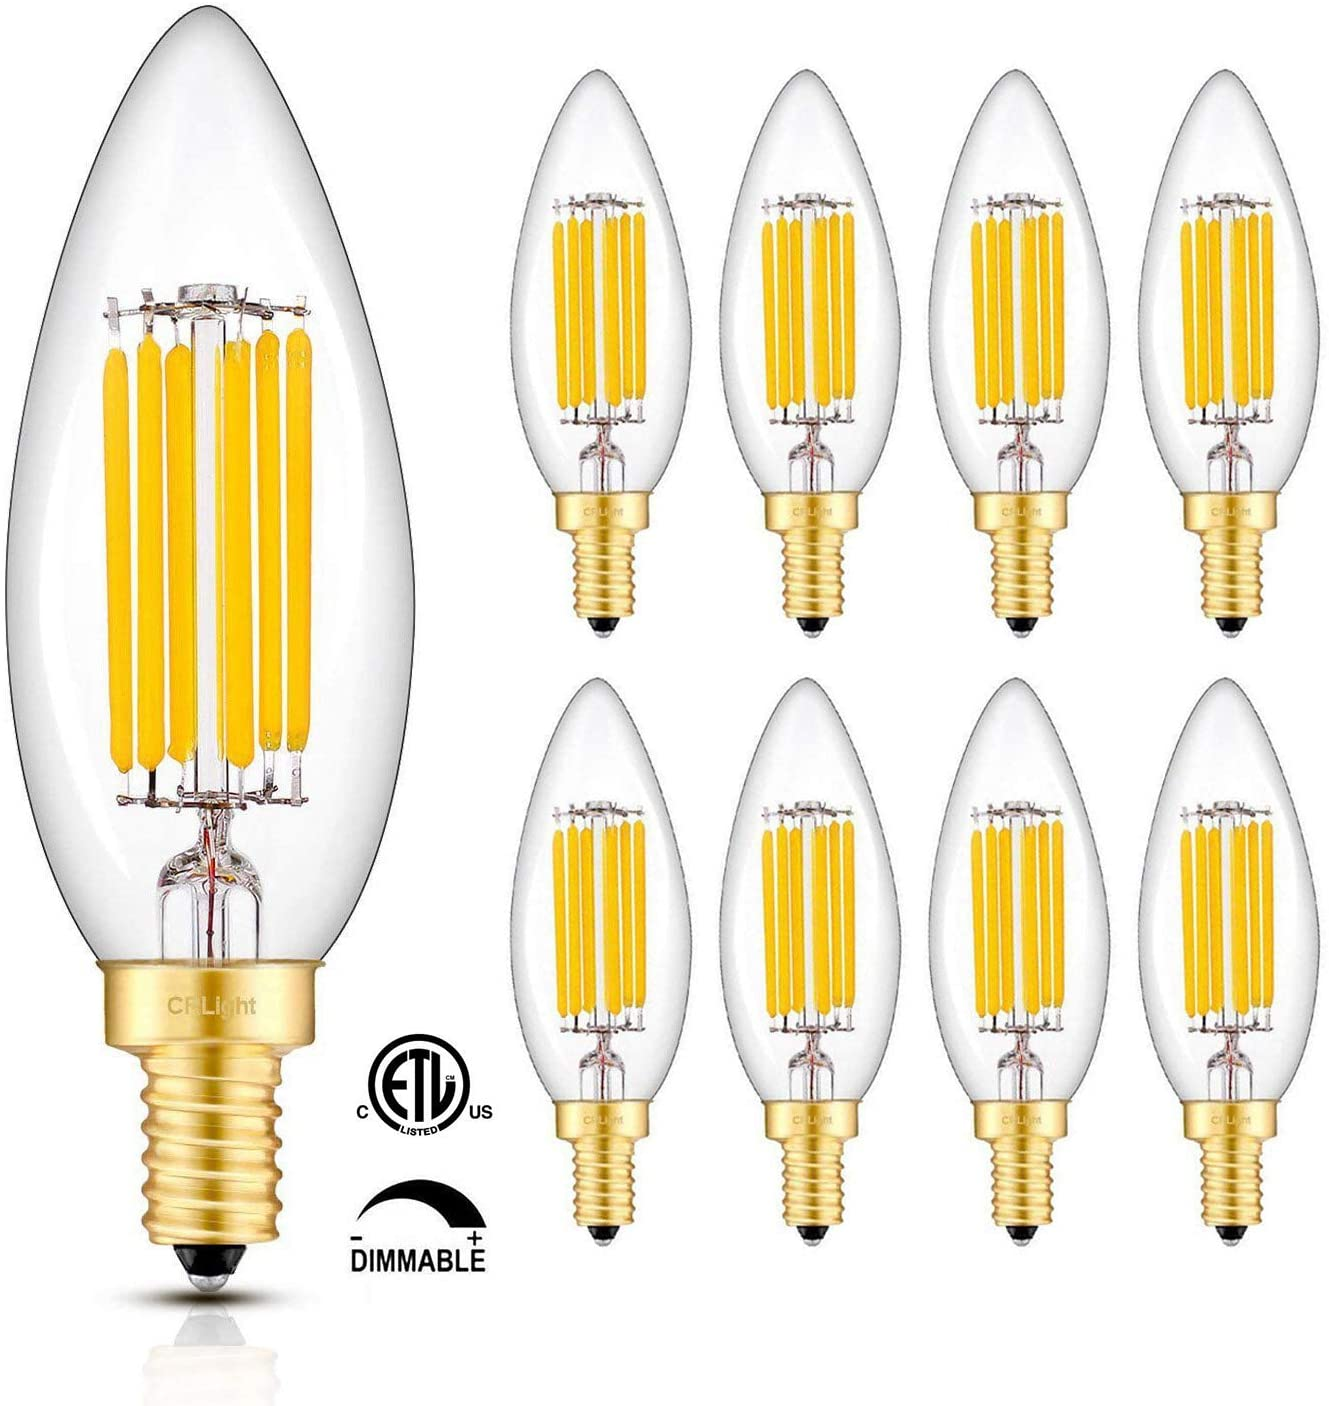 CRLight 6W 3000K Dimmable LED Candelabra Bulb Soft White, 65W Equivalent 650LM, E12 Base LED Filament Chandelier Light Bulbs, Antique Edison Clear Glass B10 Candle Decorative Bulbs, Pack of 8